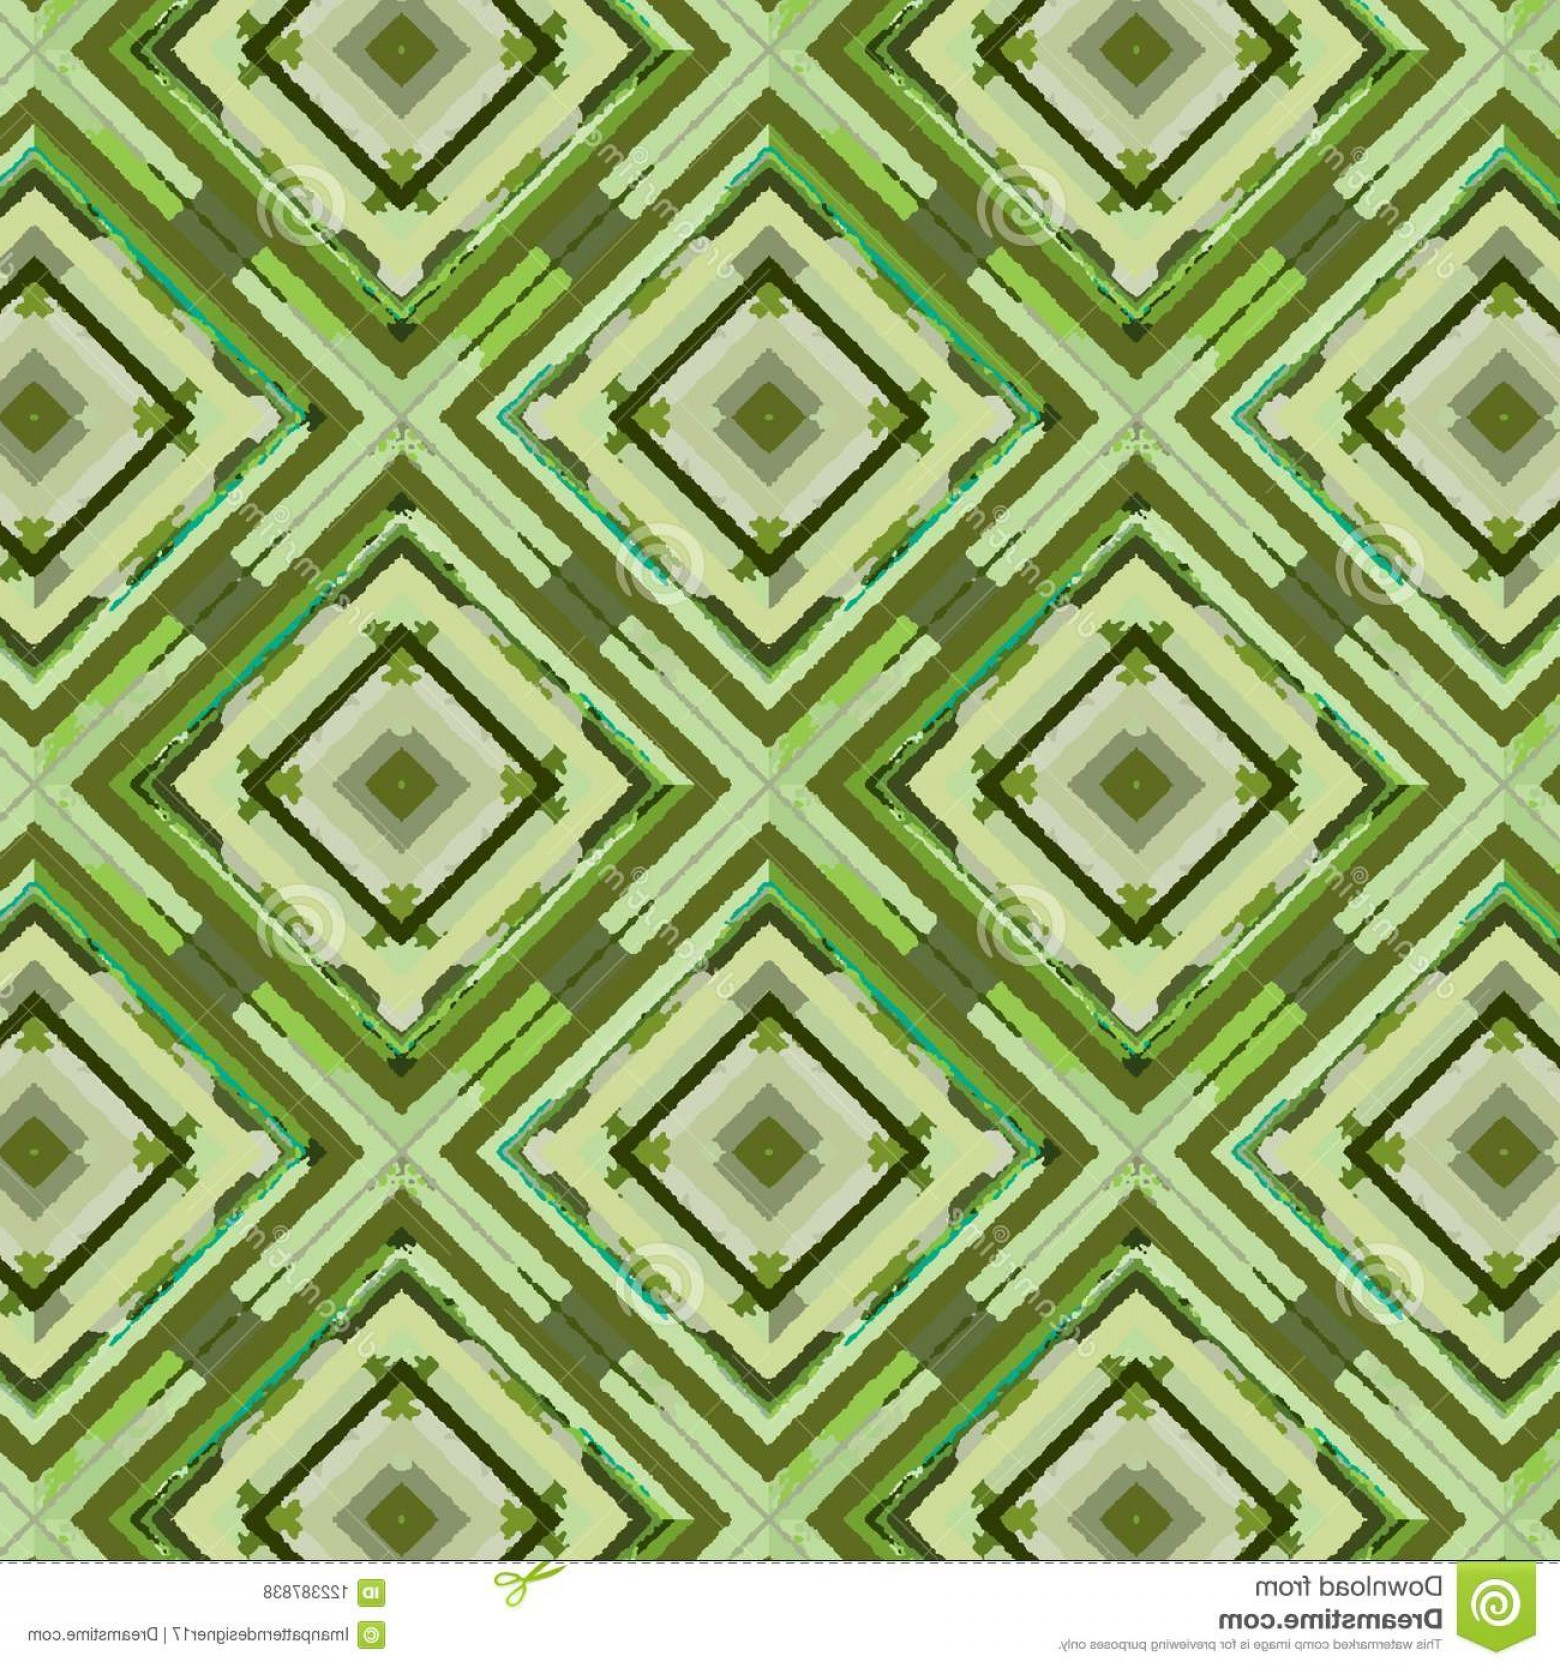 Loose Diamond Border Vector: Colorful Green Diamonds Squares Seamless Pattern Painted Repeating Rhombuses Hand Painting Quality Textile Image